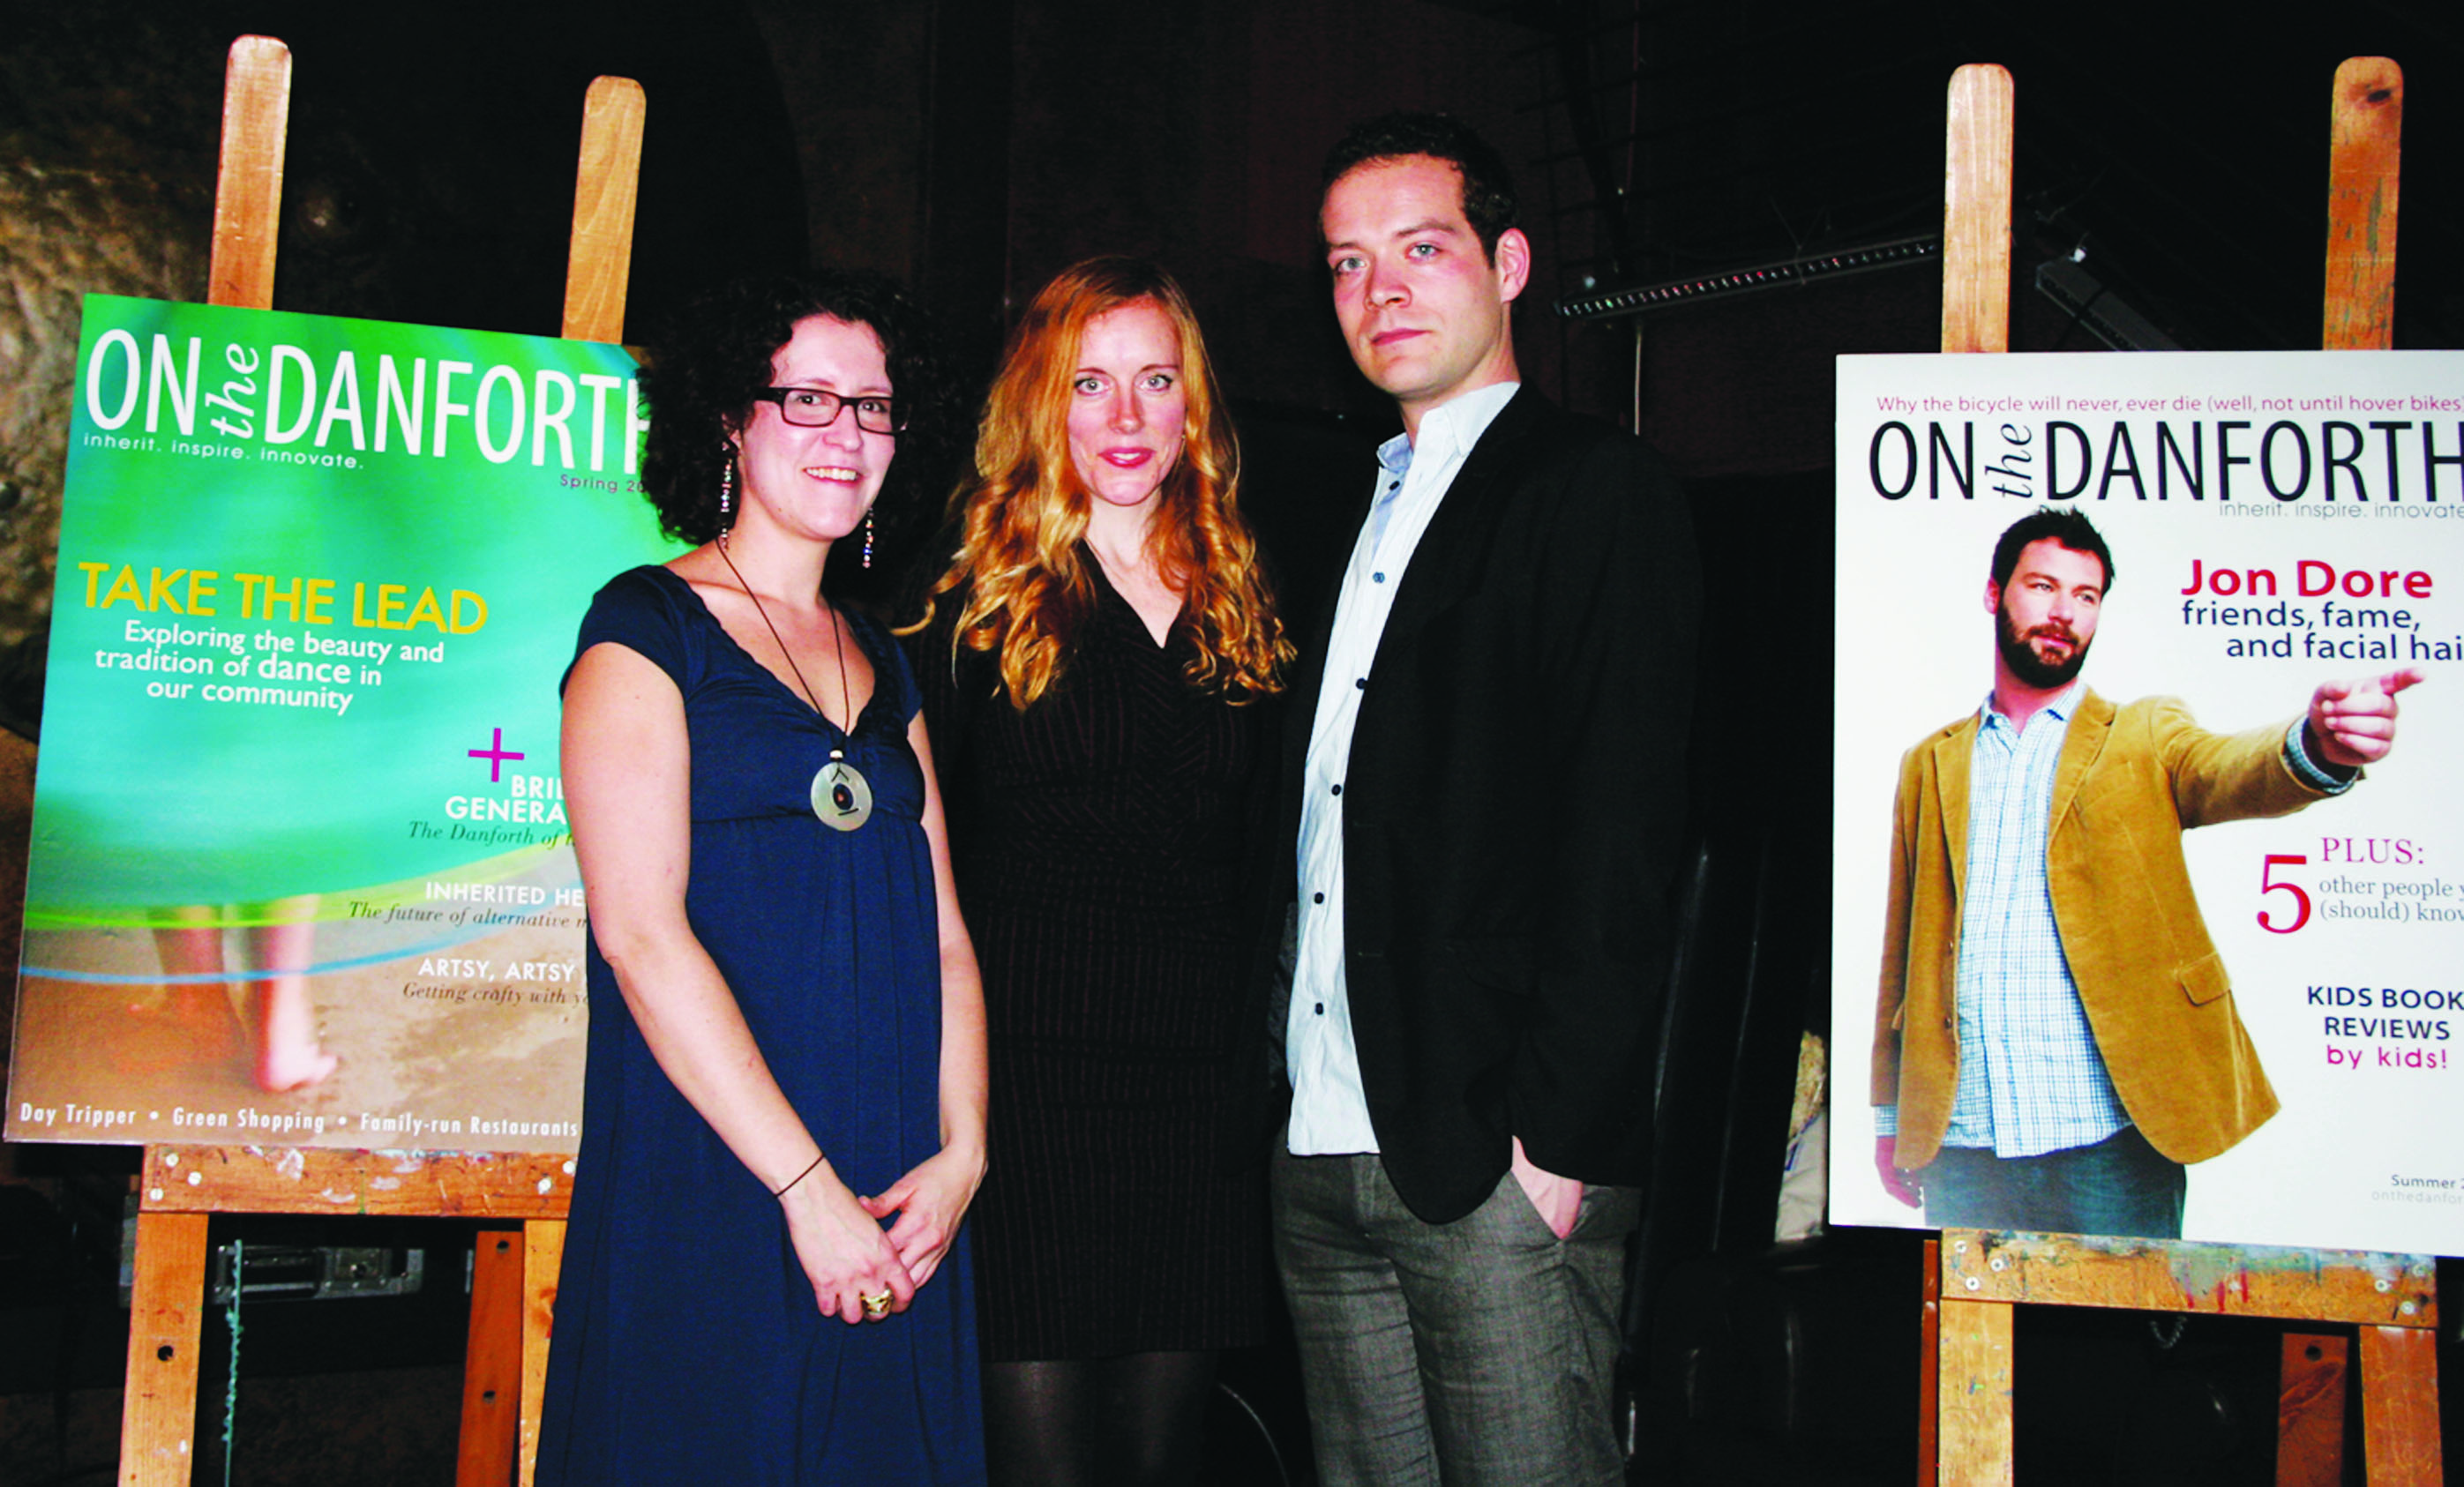 Publisher Stan Byrne (centre) stands between editors-in-chief Nicole Chaplin (left) and Jason Rhyno at the 2009 launch celebration of On the Danforth magazine, held at Myth Restaurant and Lounge on March 18.